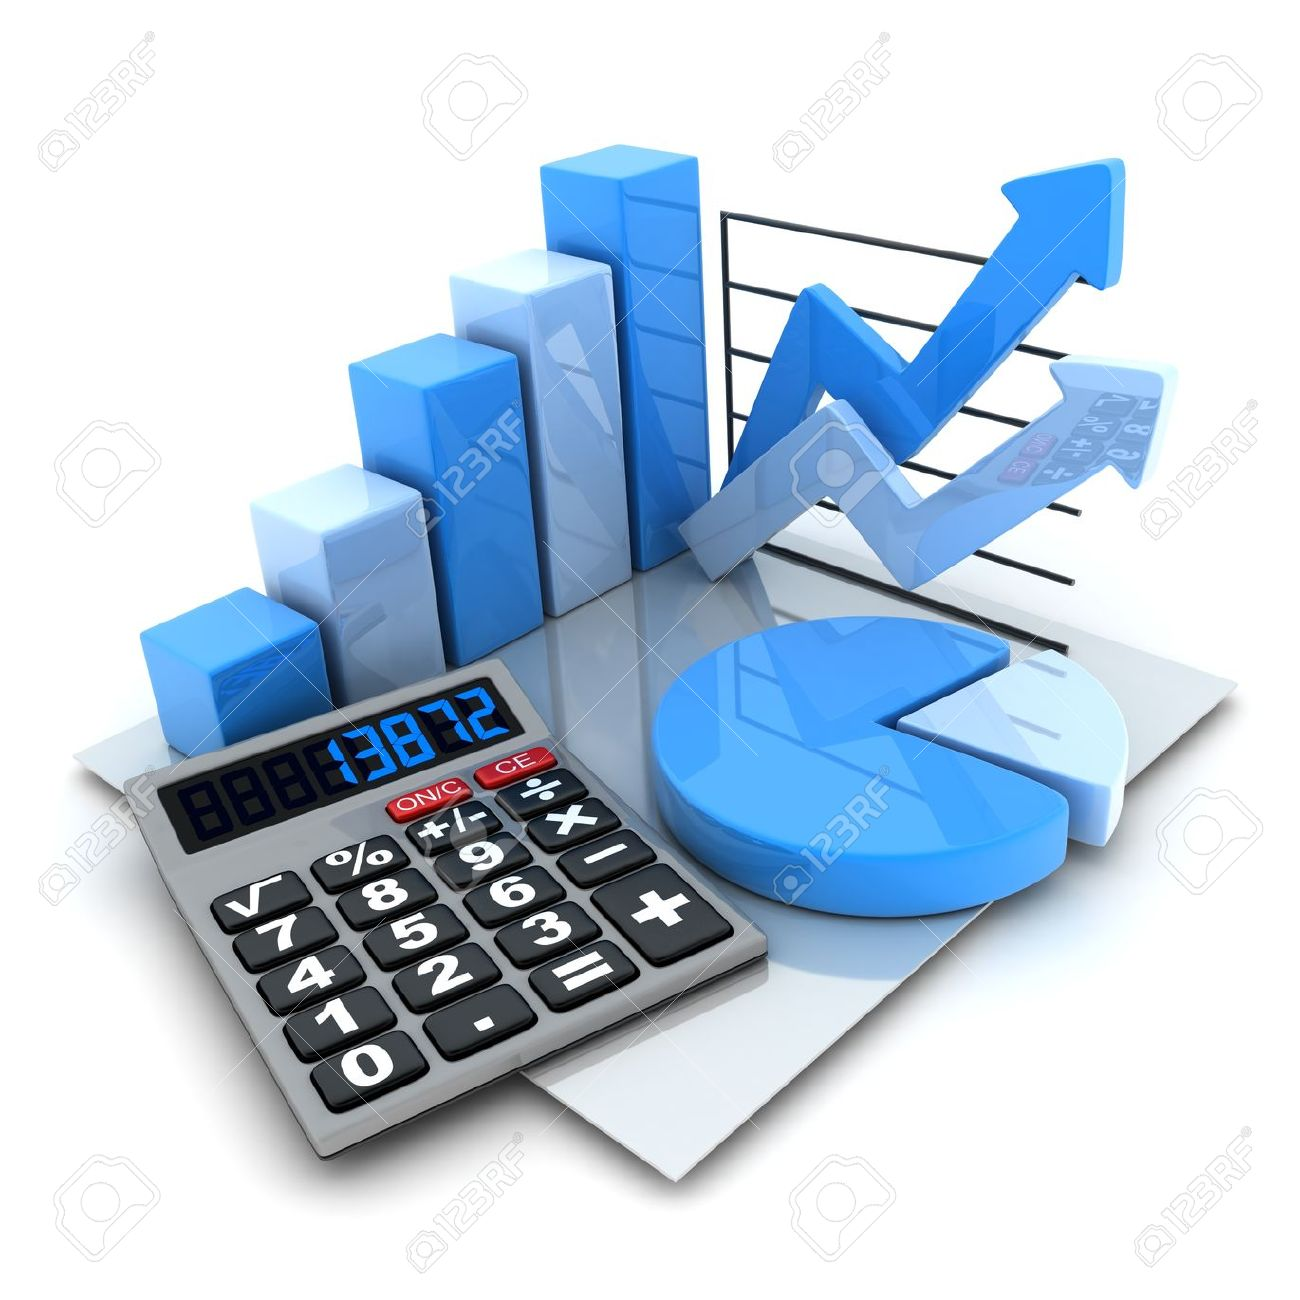 486 Accounting free clipart.